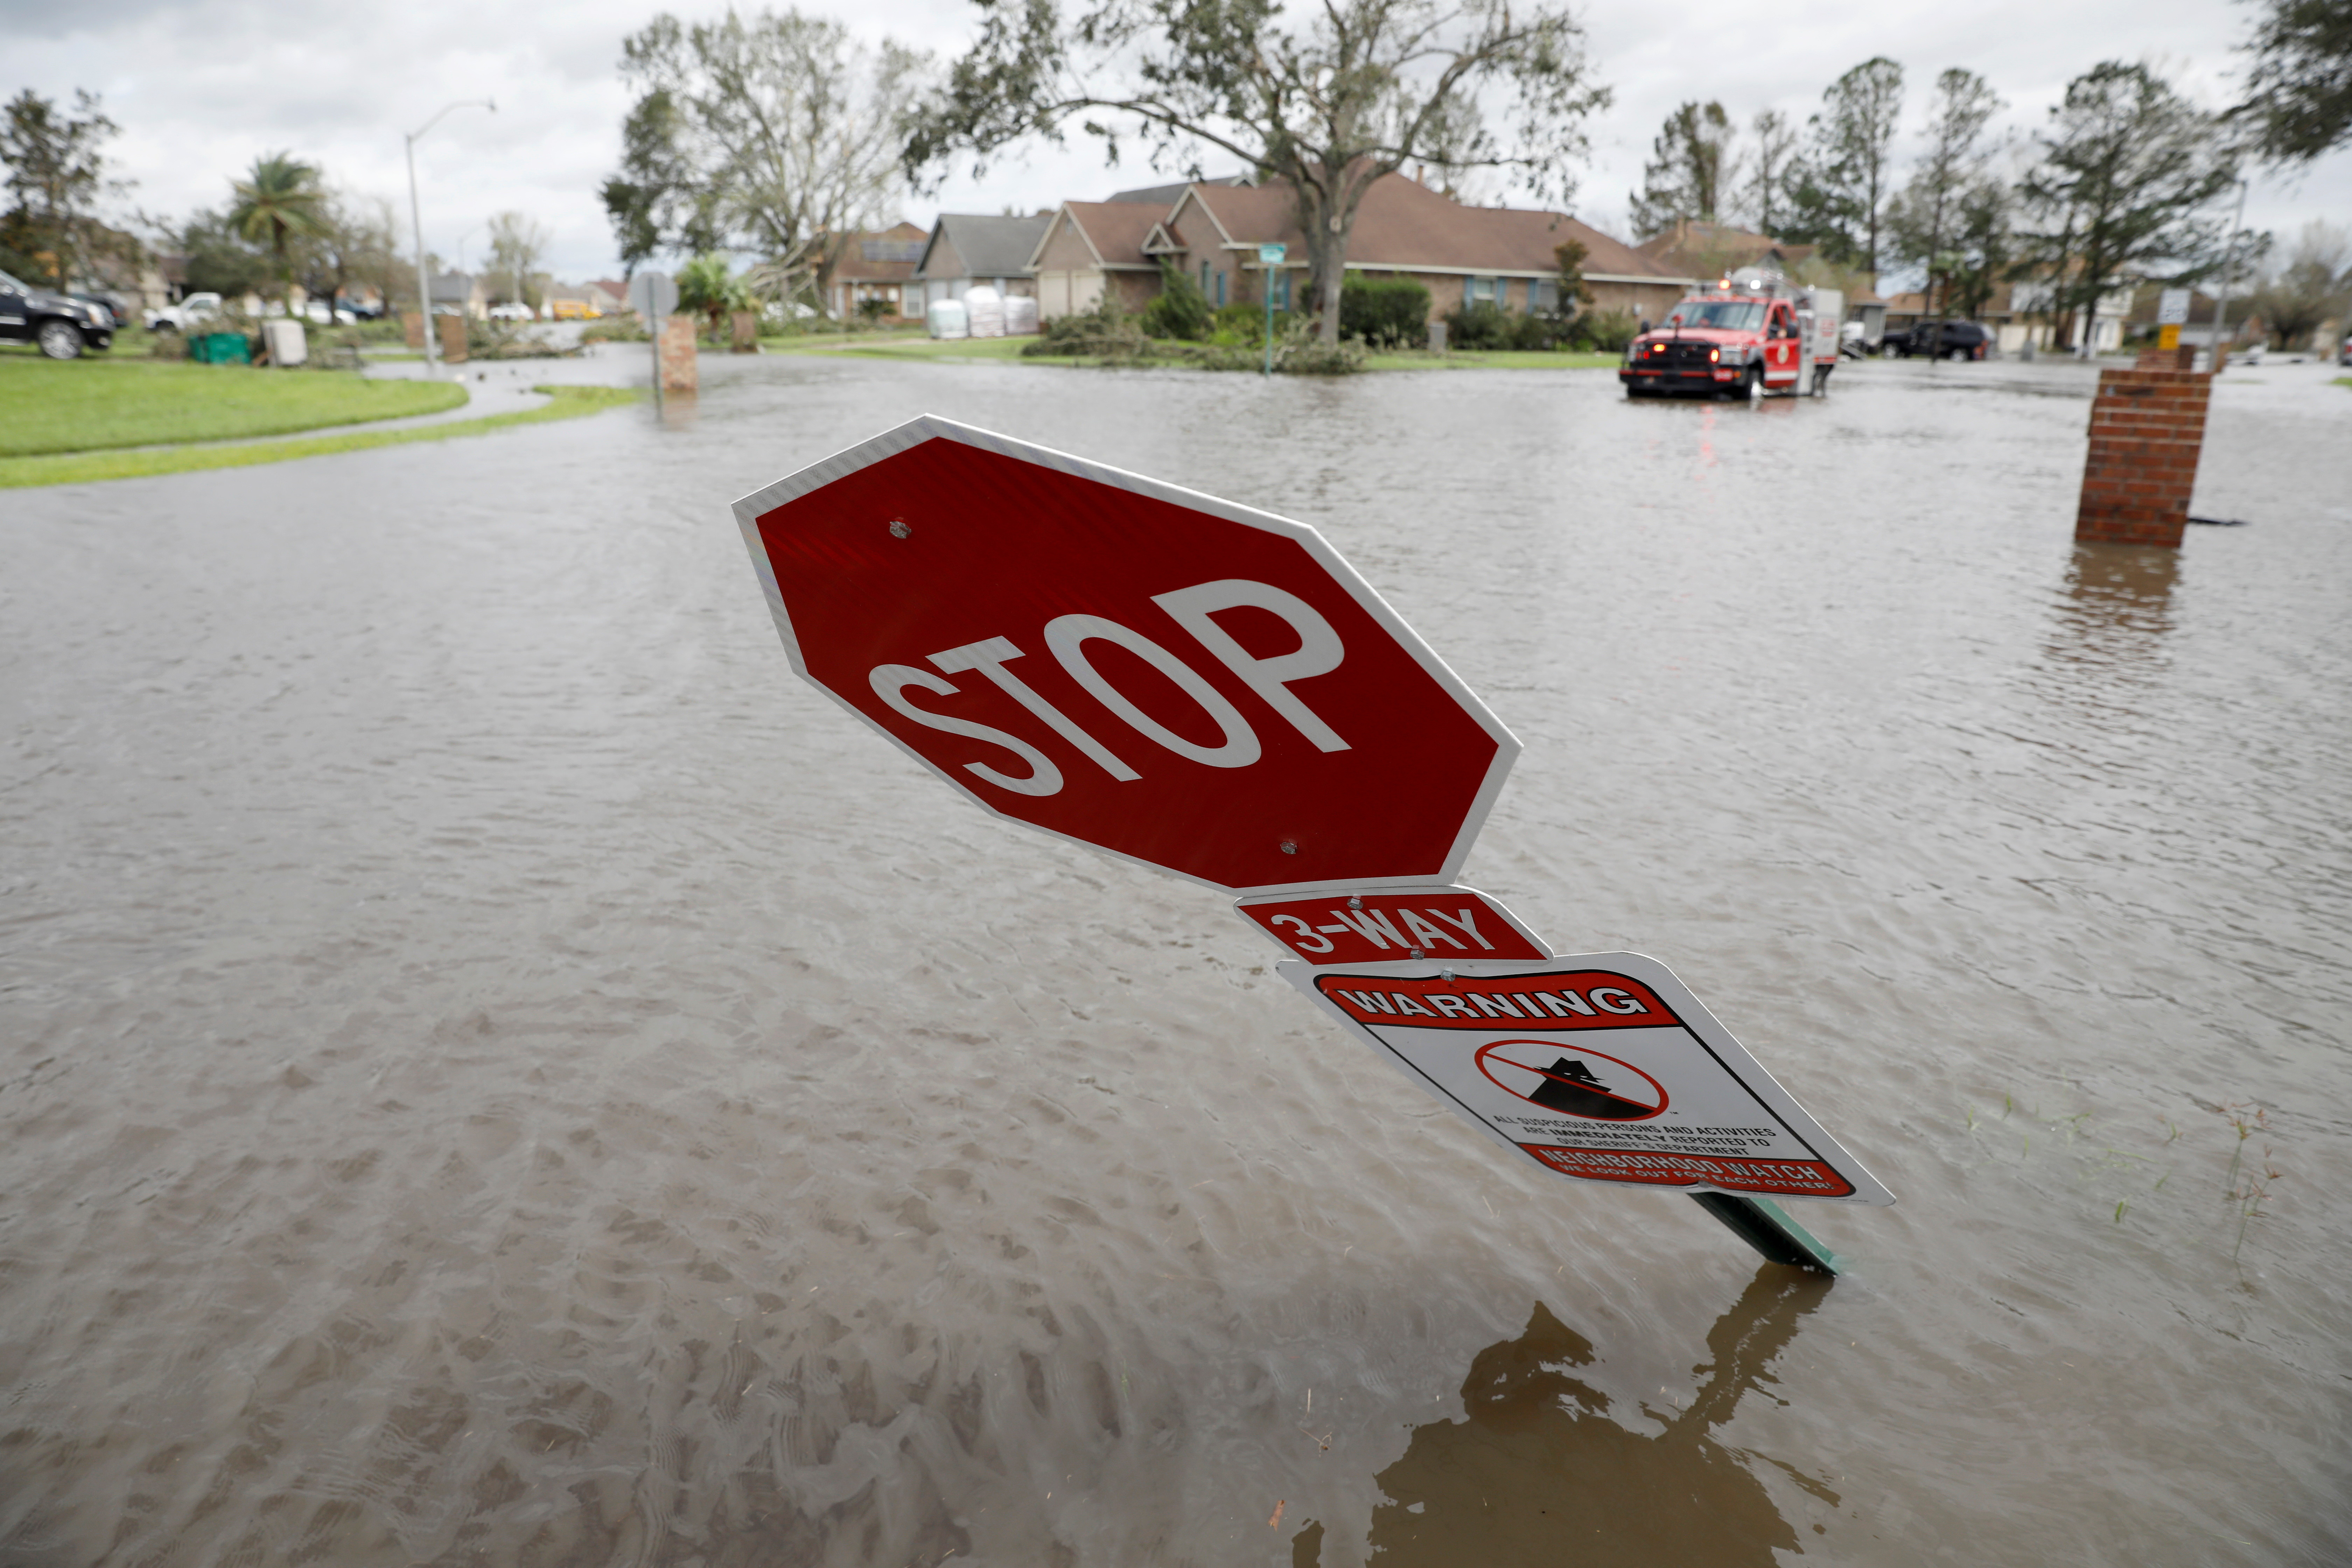 A flooded street is pictured after Hurricane Ida made landfall in Louisiana, in Laplace, Louisiana, U.S. August 30, 2021. REUTERS/Marco Bello - RC2RFP9QSW24